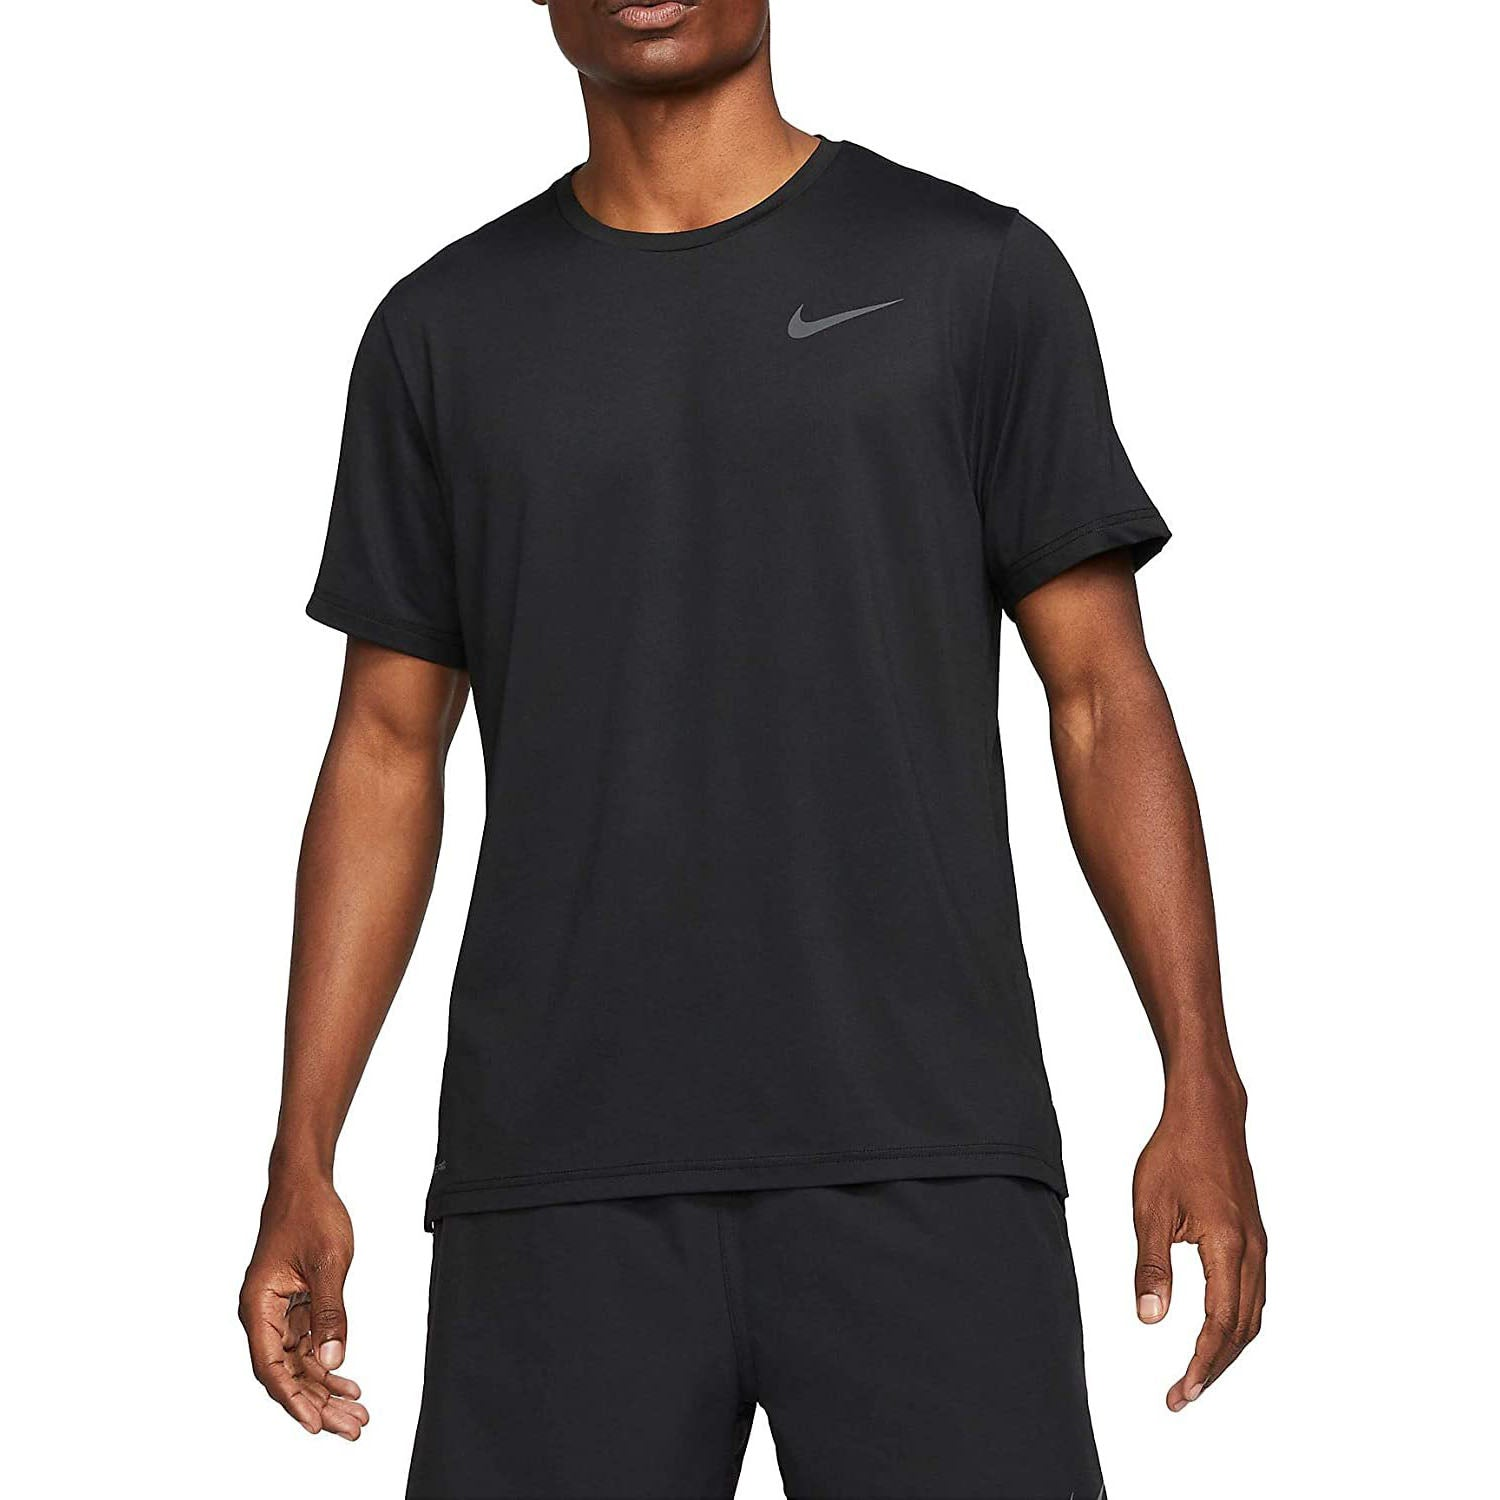 Nike Pro Dri-FIT Men's Short-Sleeve Top Cz1181-011